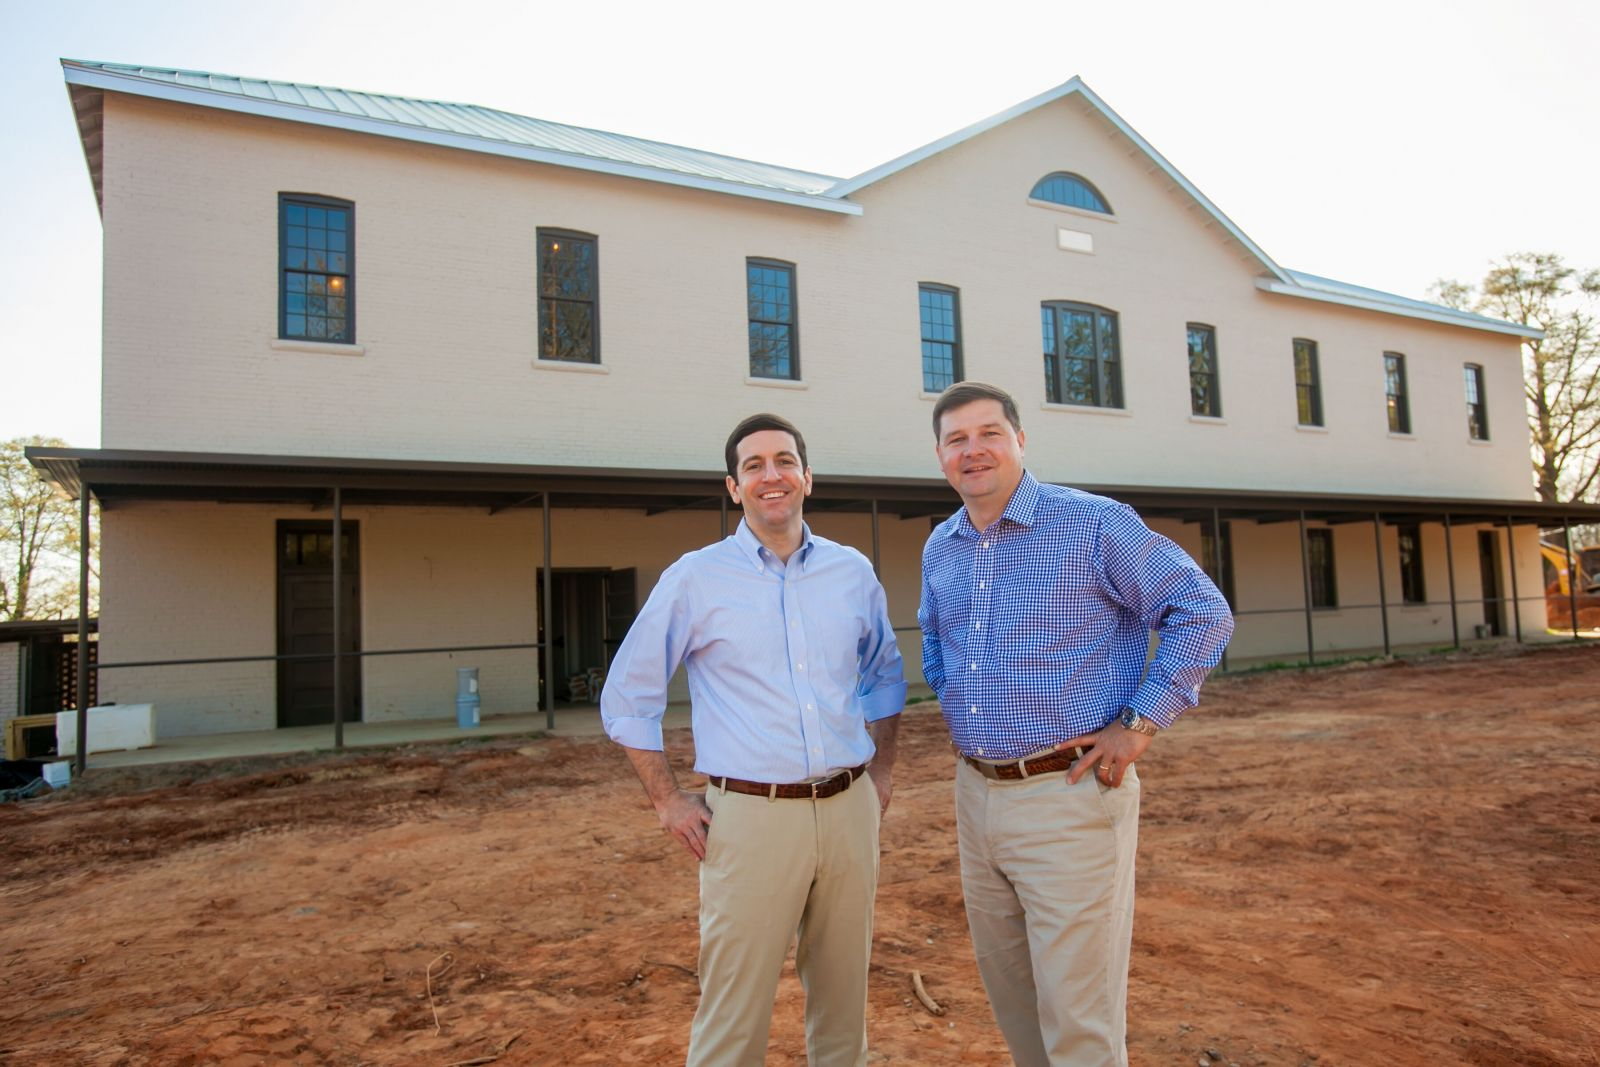 Bowen Horger (left) and Will Batson of Diversified Development bought the Parker Annex in October and have repurposed the building for office space. (Photo/Jeff Blake)